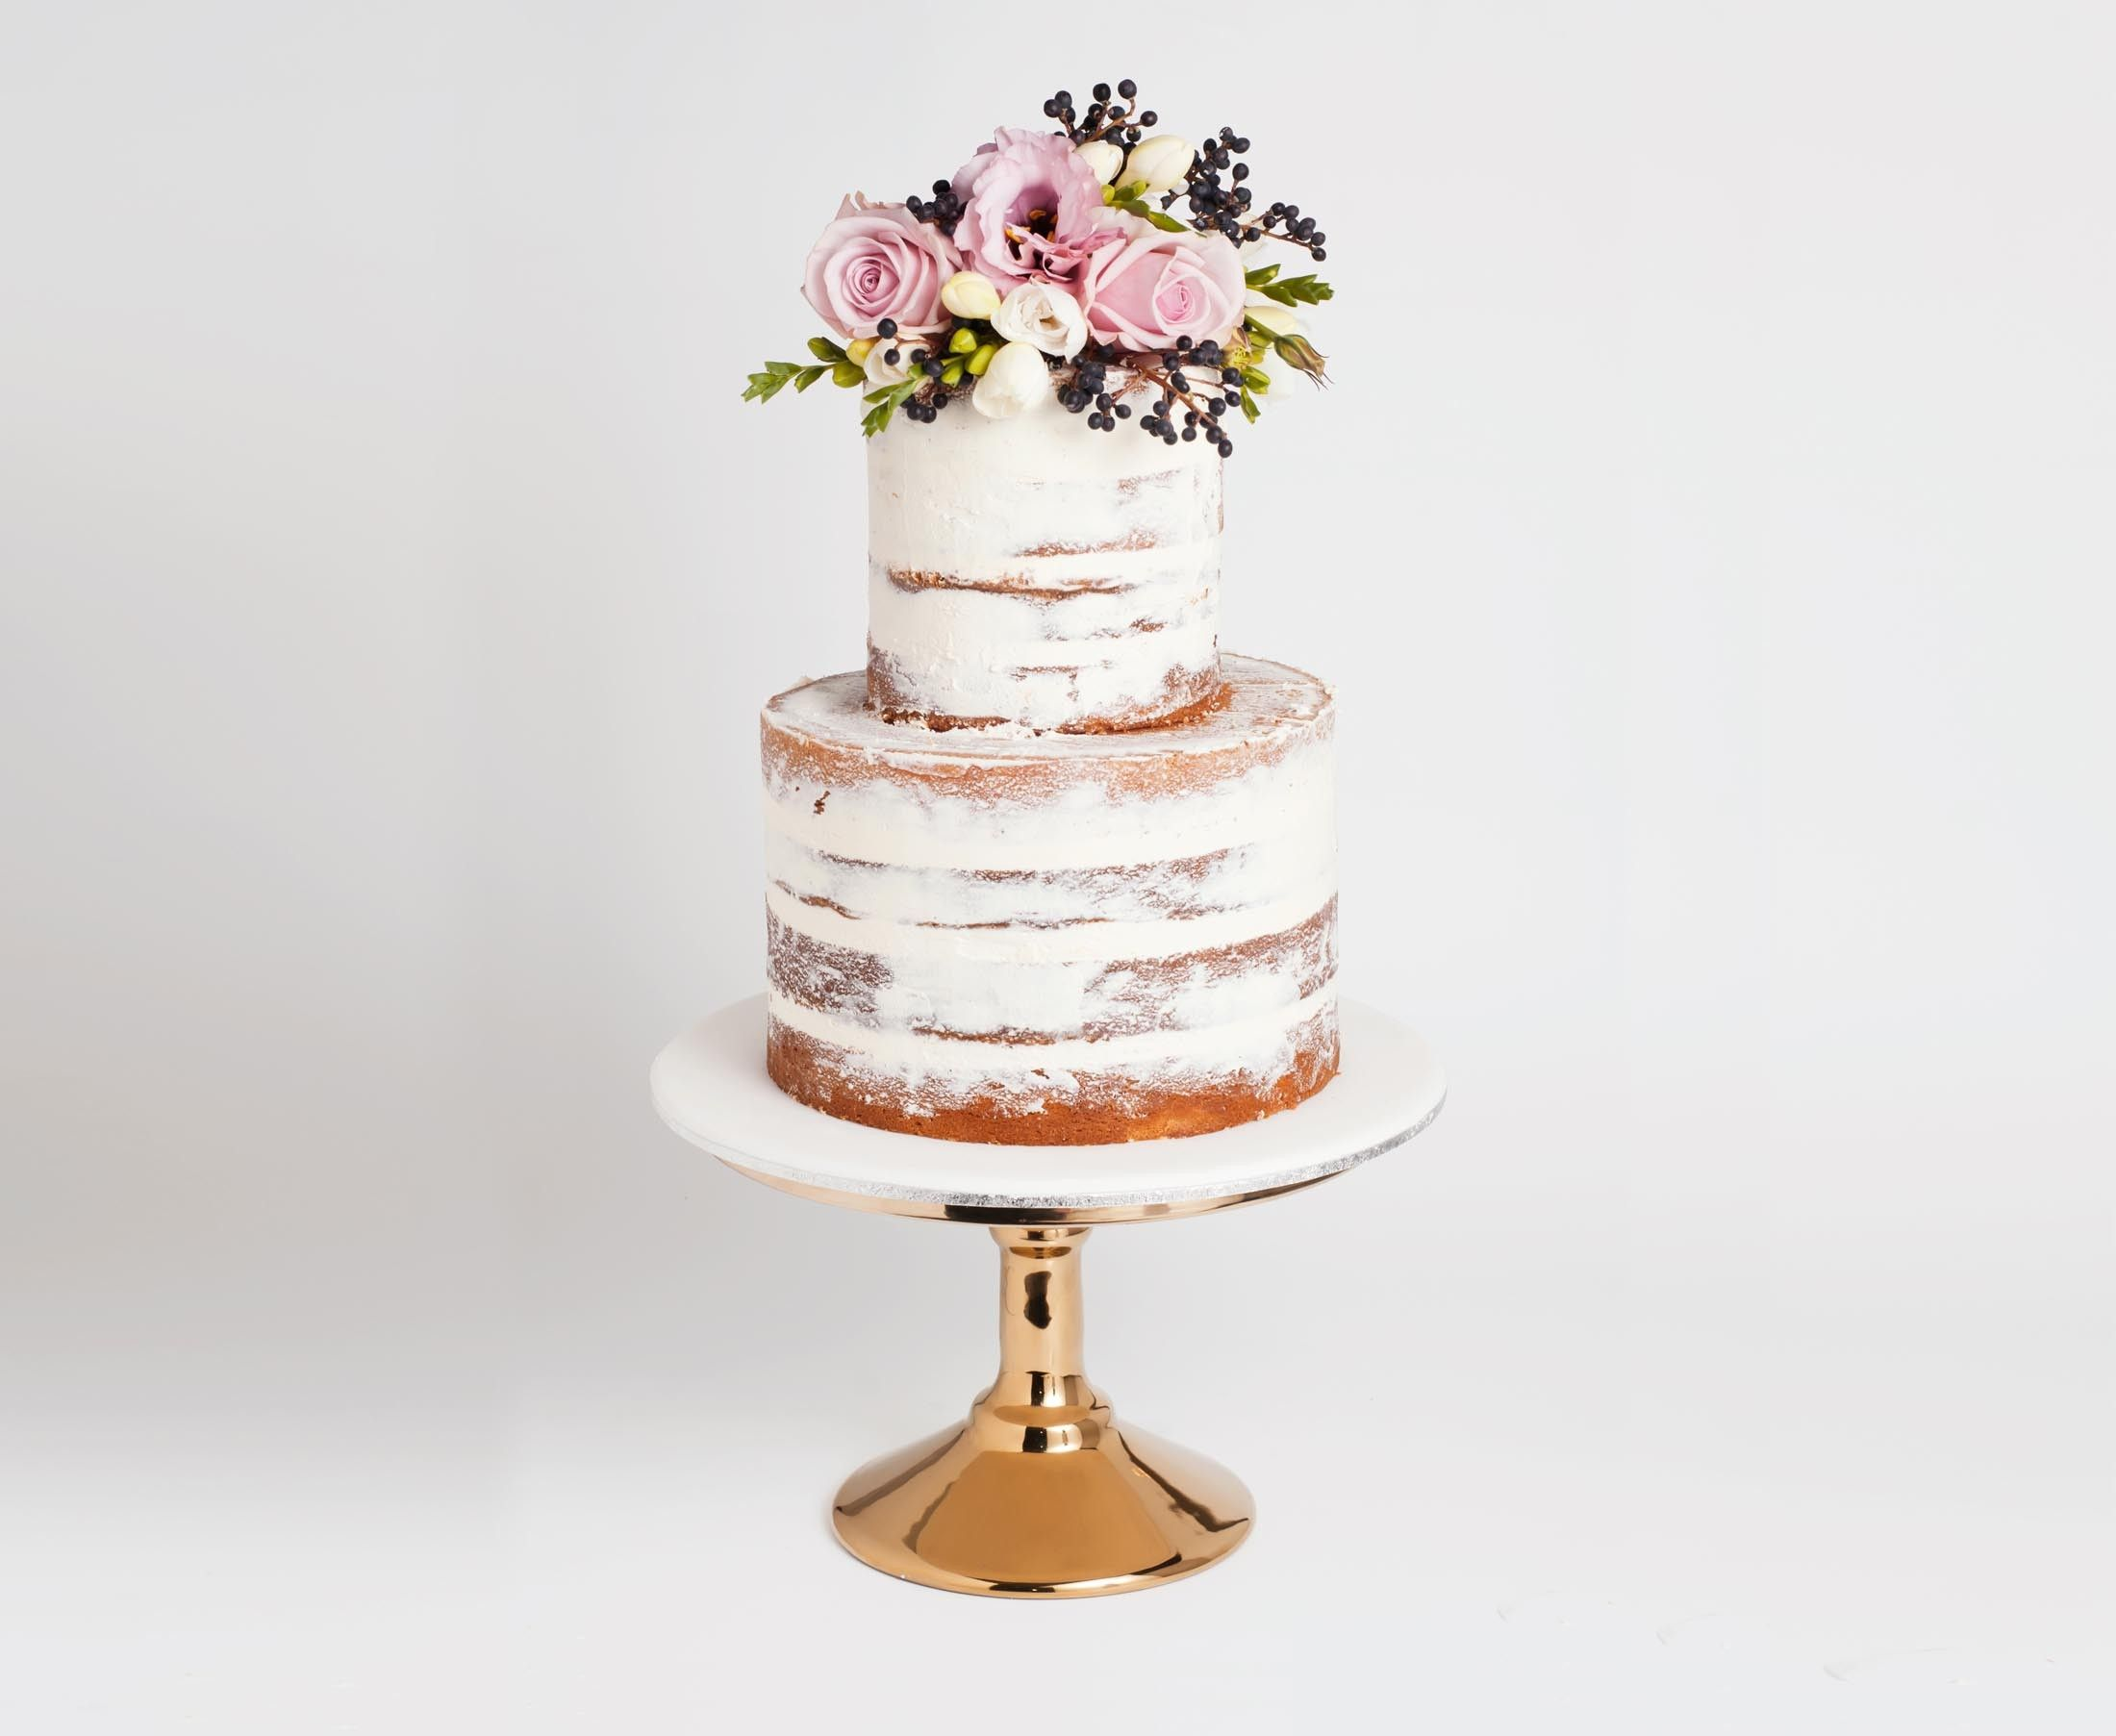 2 tiered semi naked wedding cake - Google Search | Wedding ...